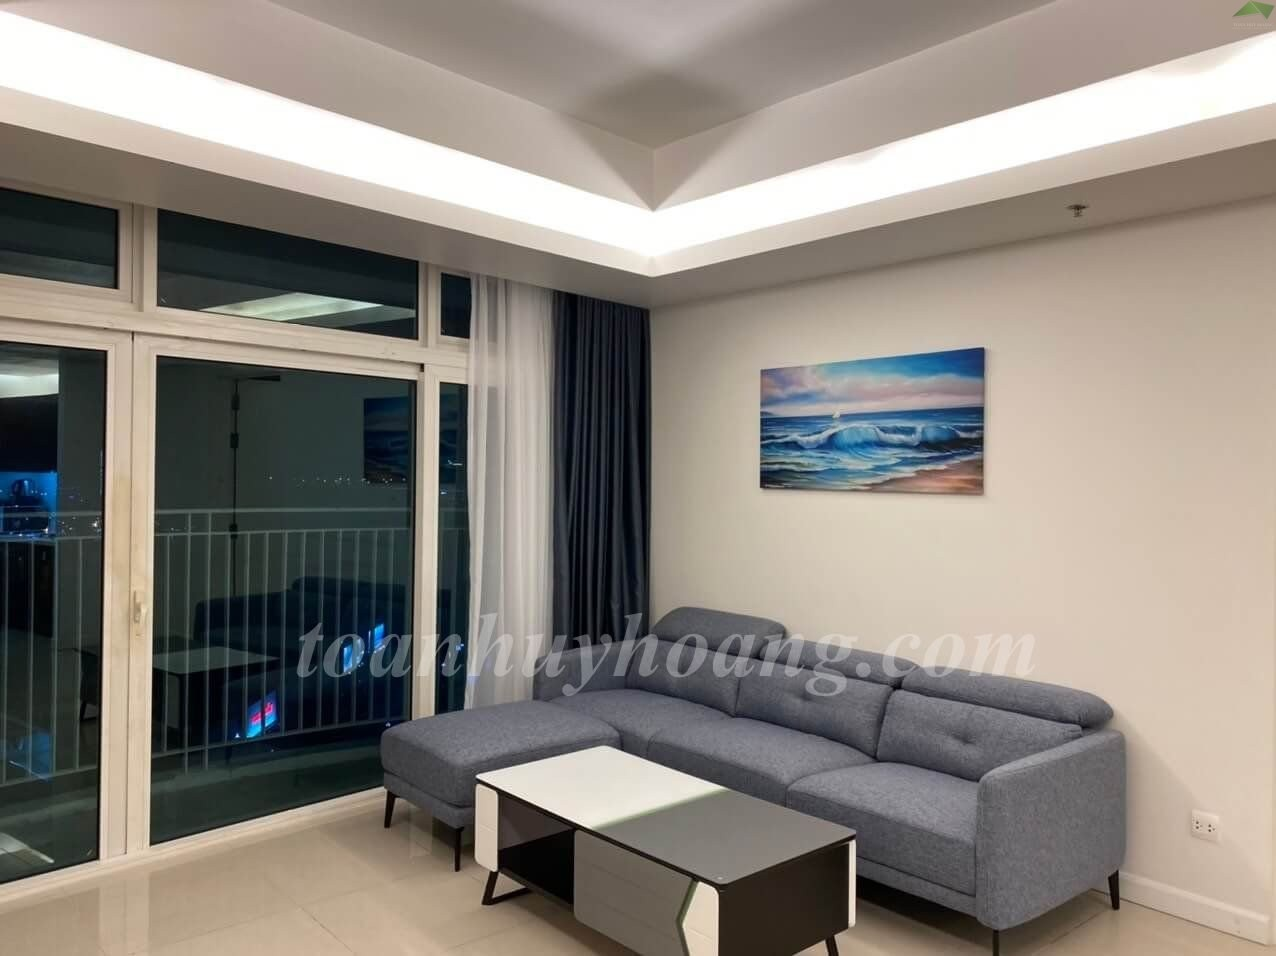 azura-apartment-for-rent-in-a-tranquil-and-peaceful-setting